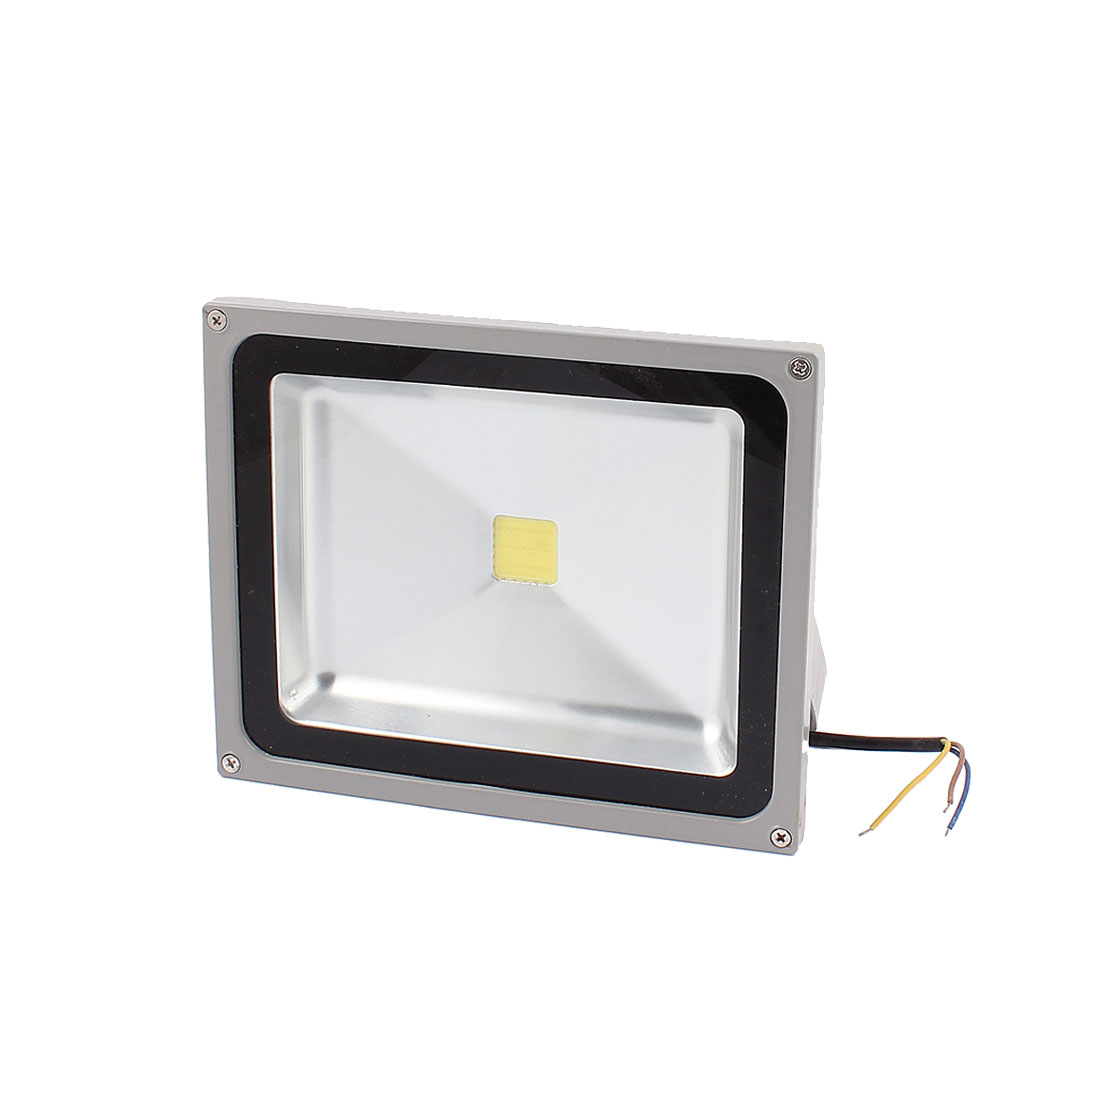 AC 90-260V 3 Wire 50W White LED Building Garden Flood Light Spotlight